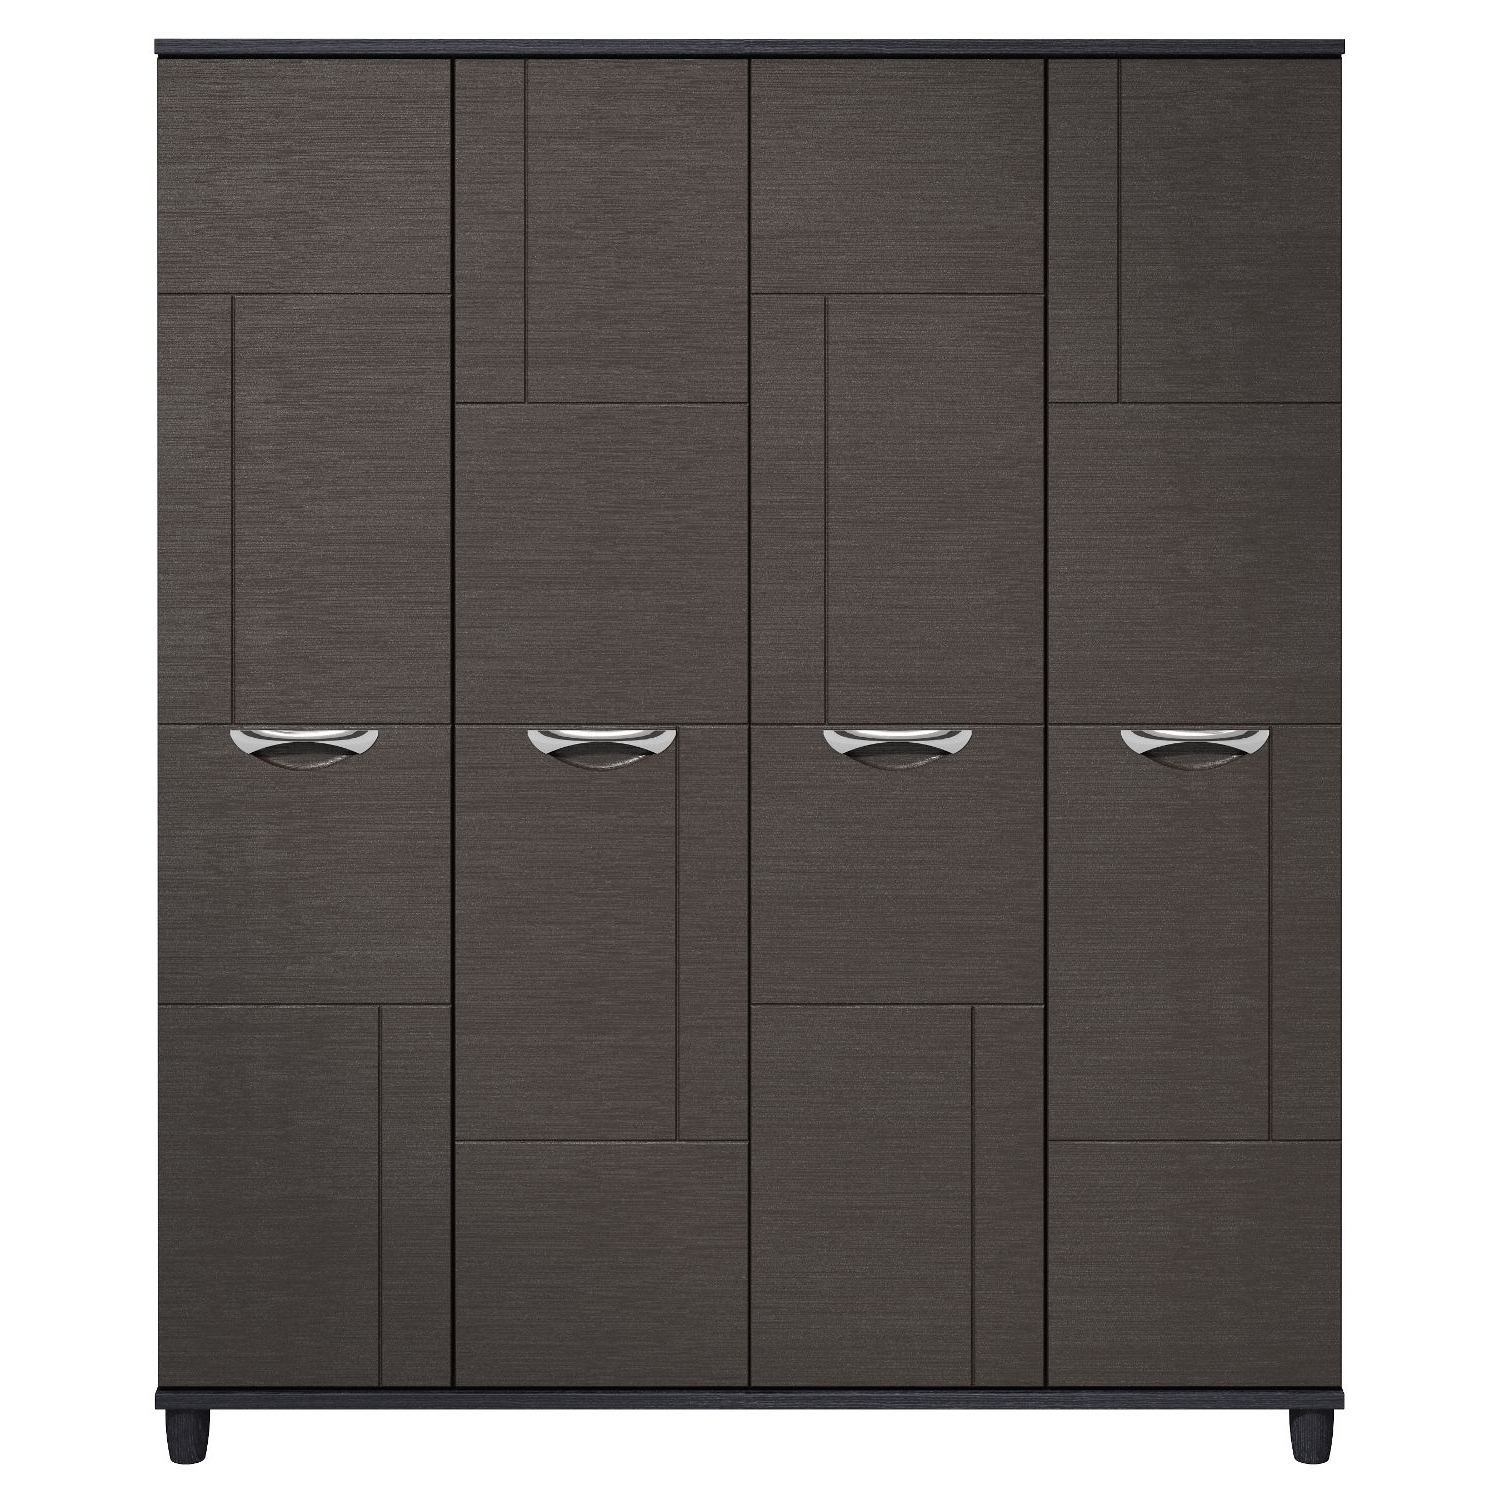 Favorite 4 Door Wardrobes Within Cesca 4 Door Wardrobe – Next Day Delivery Cesca 4 Door Wardrobe (View 9 of 15)